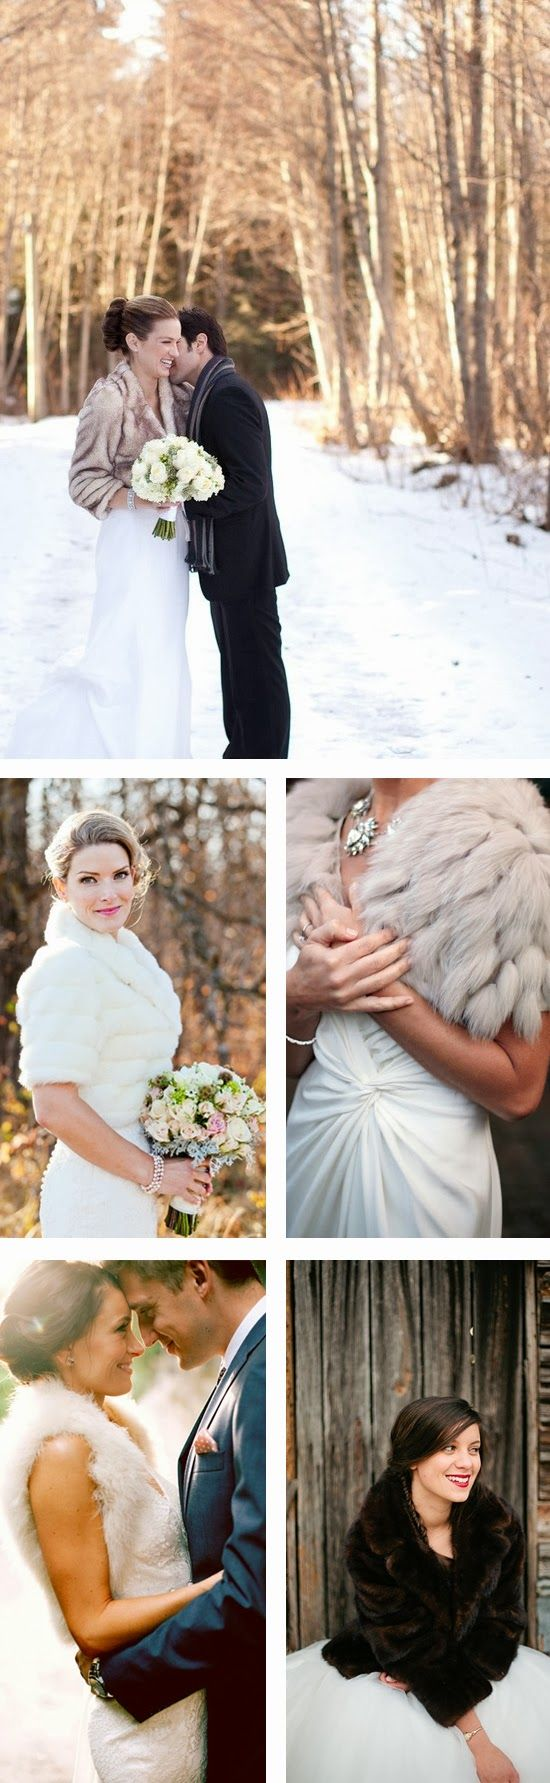 Flaunt Your Wedding Fur - How to wear fur on your wedding day #weddings #fashion #accessories